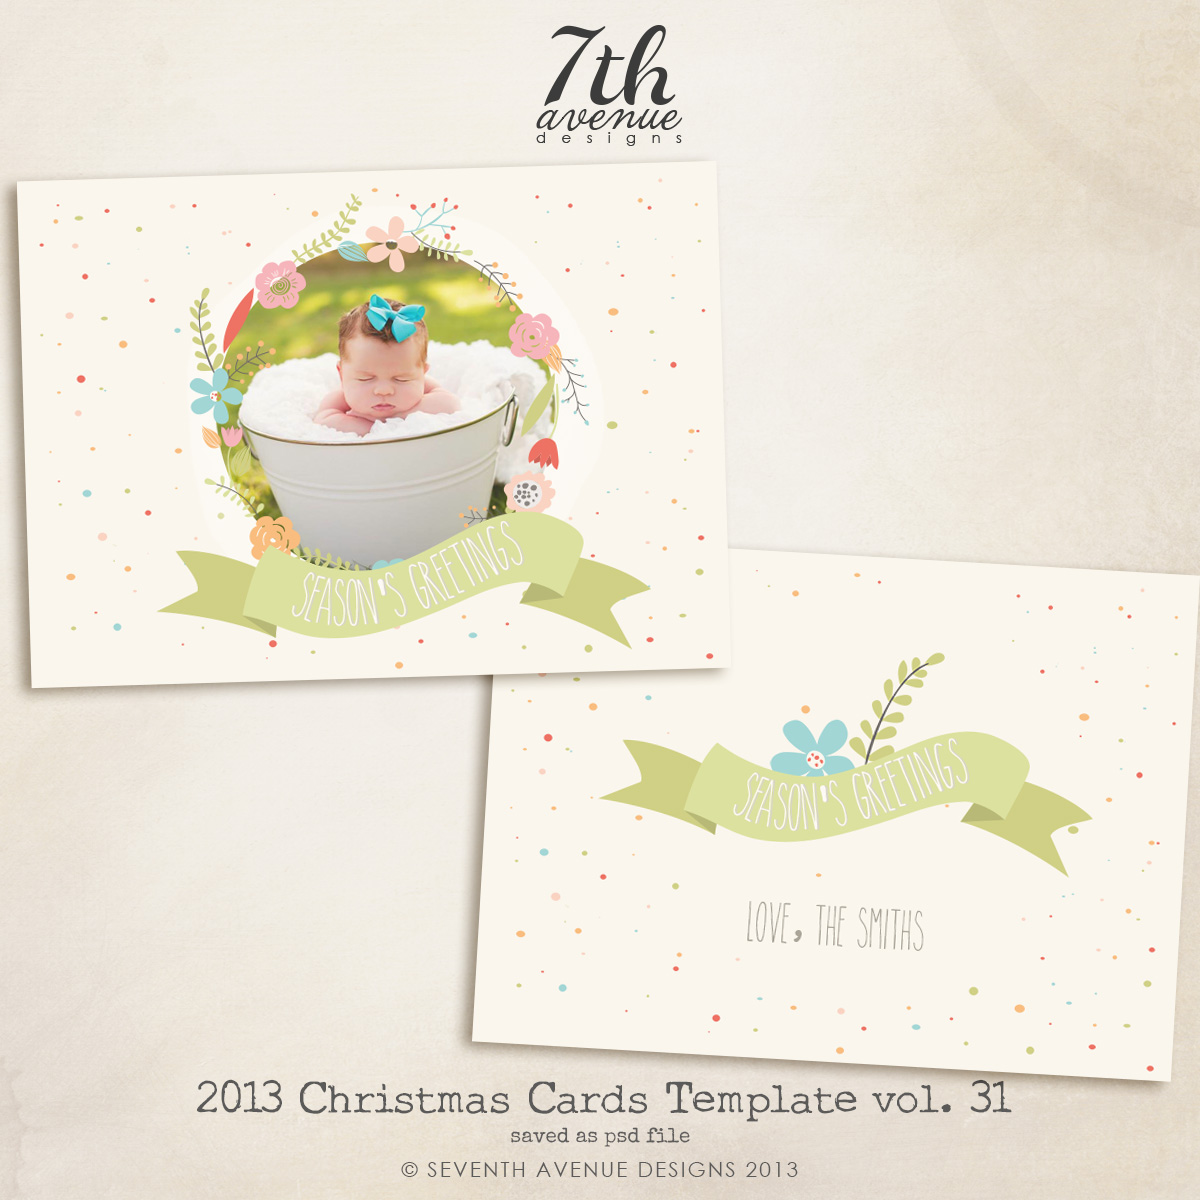 2013 Christmas Card Templates vol.31